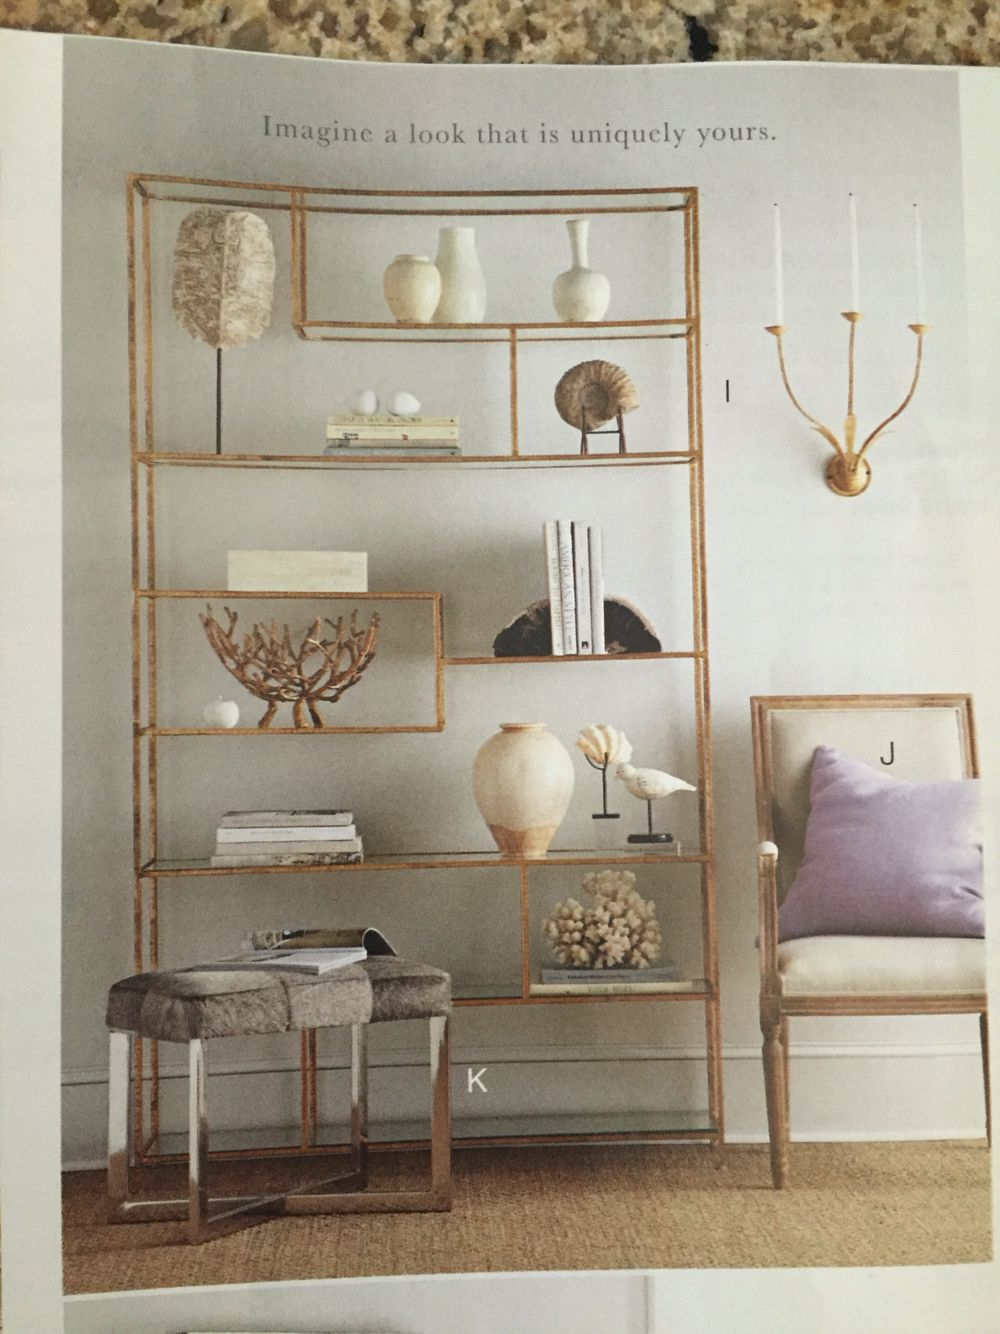 Wisteria Etagere T11788 1800 Home Ideas Pinterest Wisteria # Etagere Cache Cable